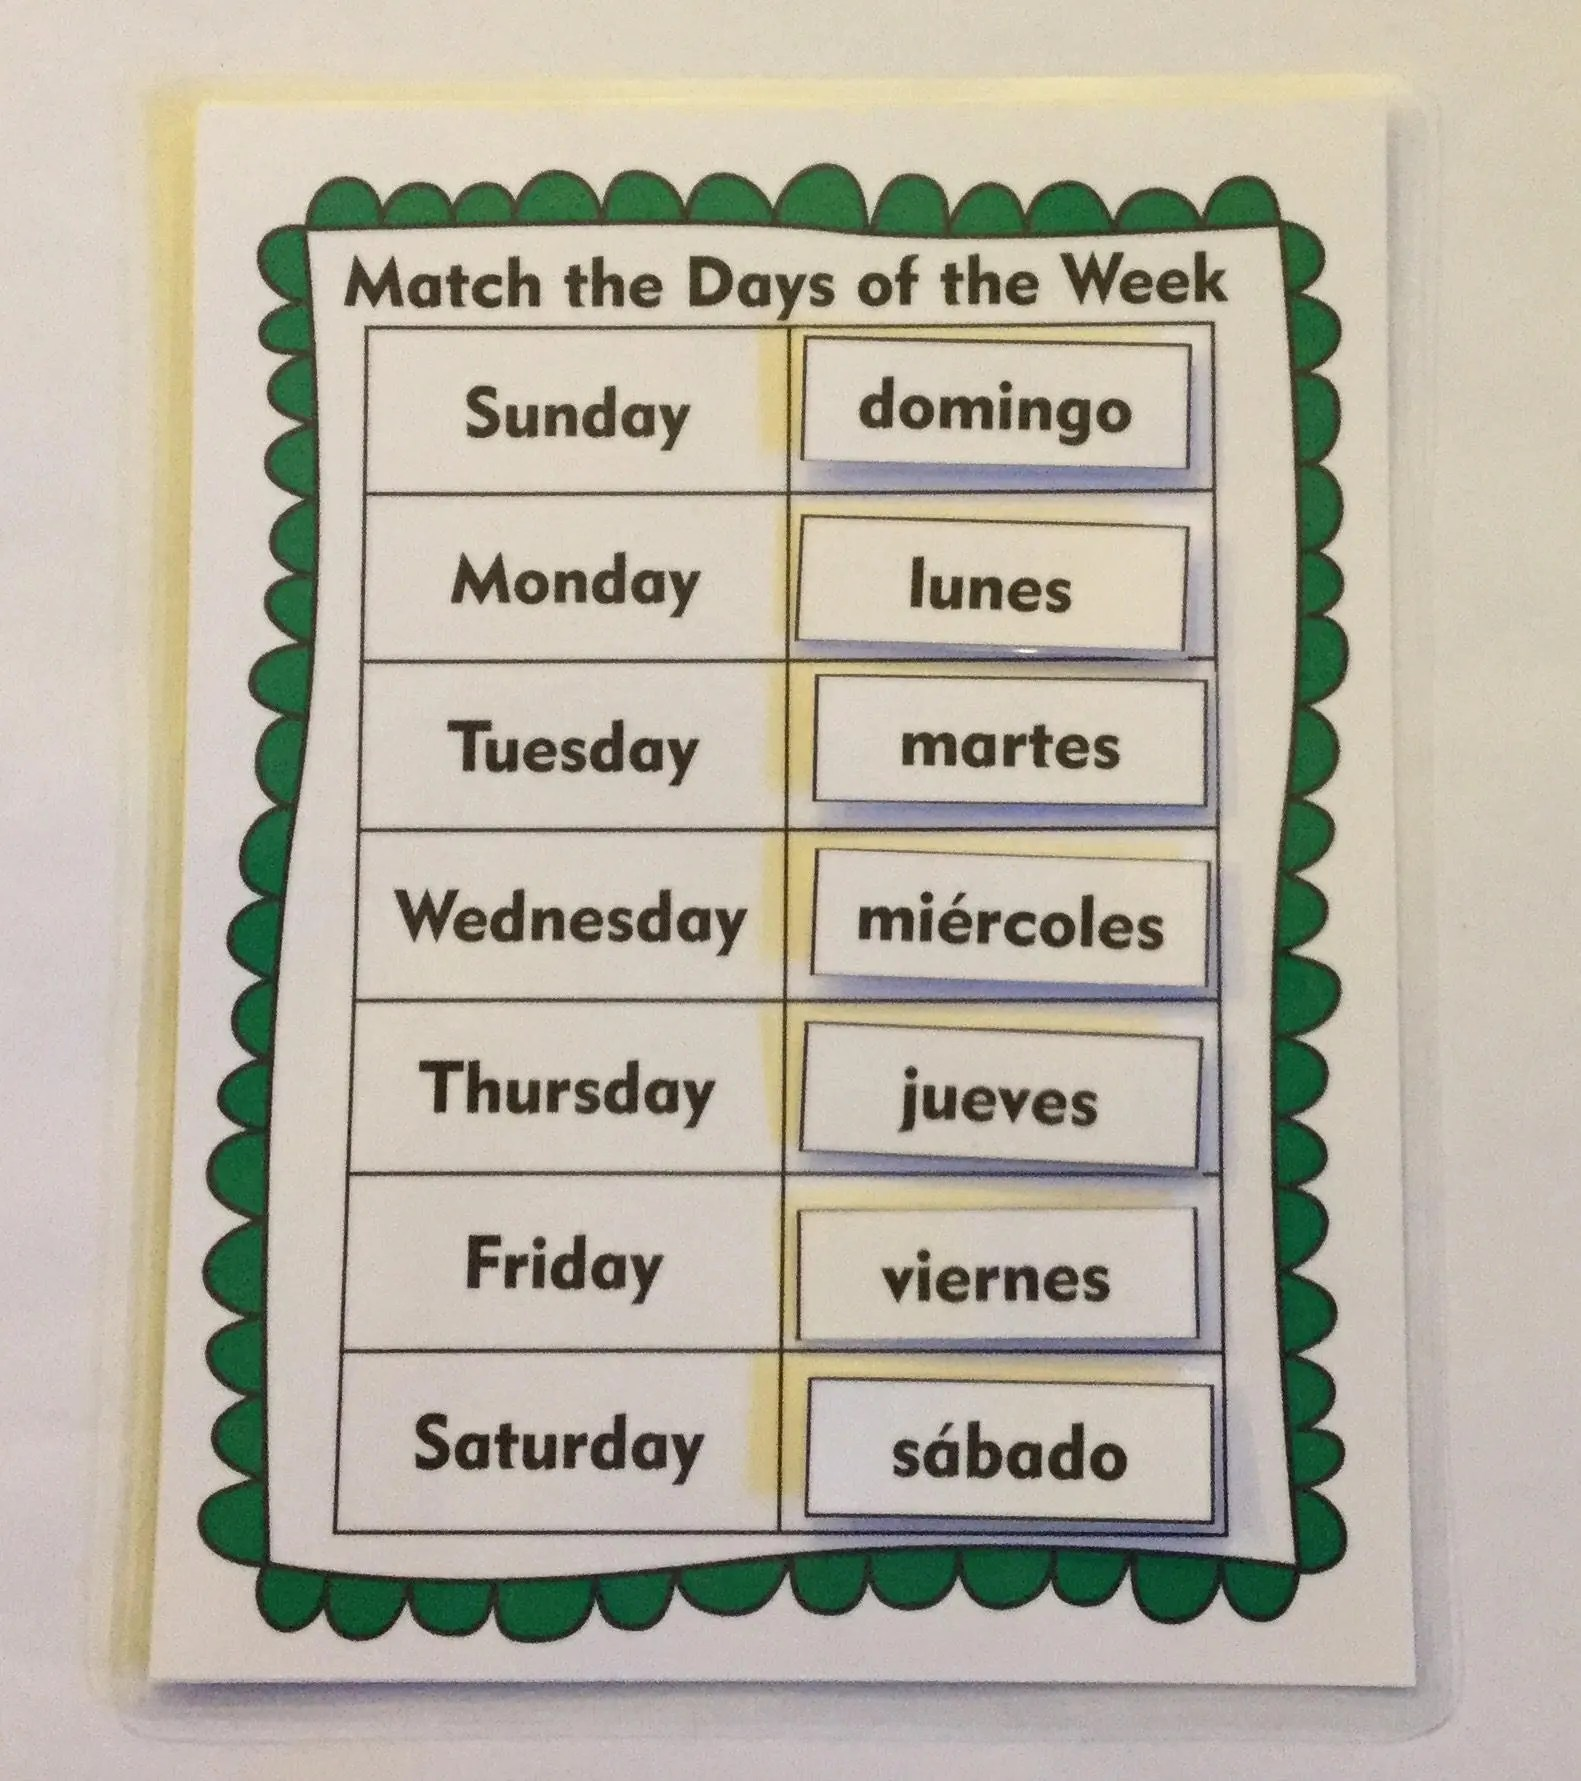 Esl Games Days Of The Week Game Spanish And English Esl Language Game Educational Game Learning Game Kids Game Children S Game